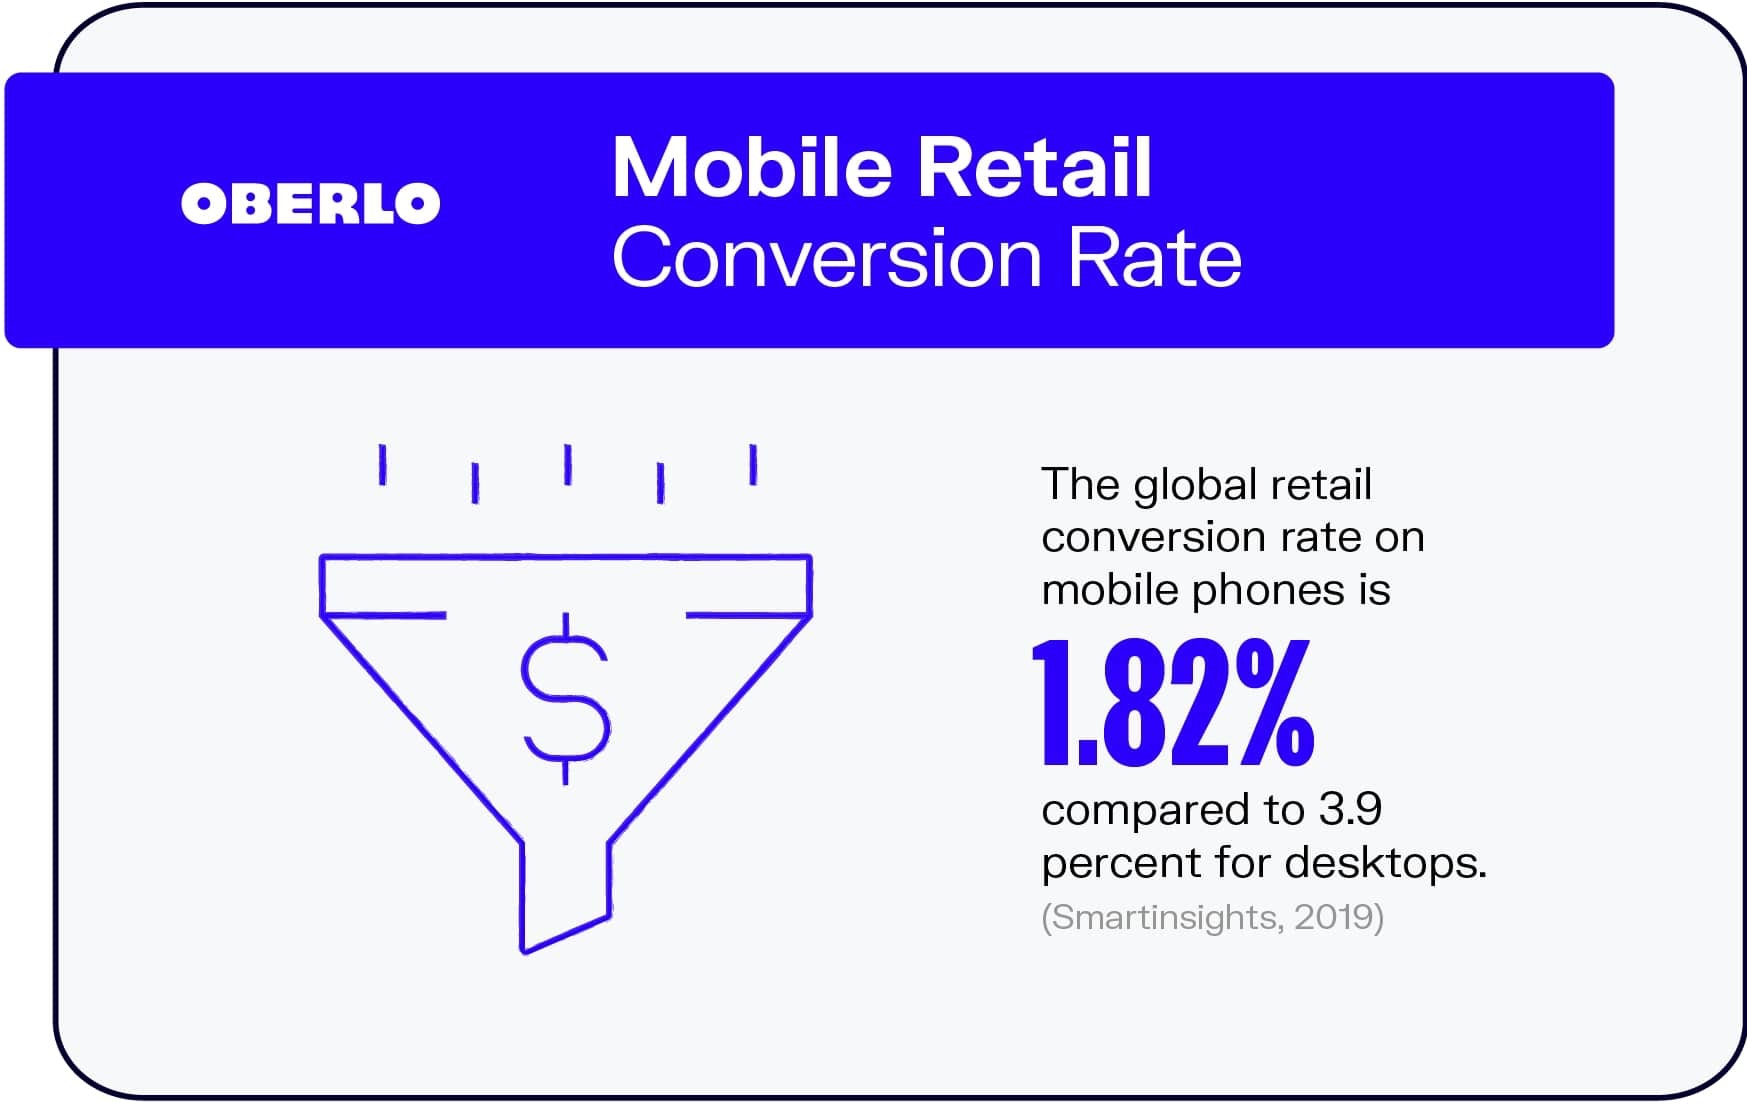 Mobile Retail Conversion Rate